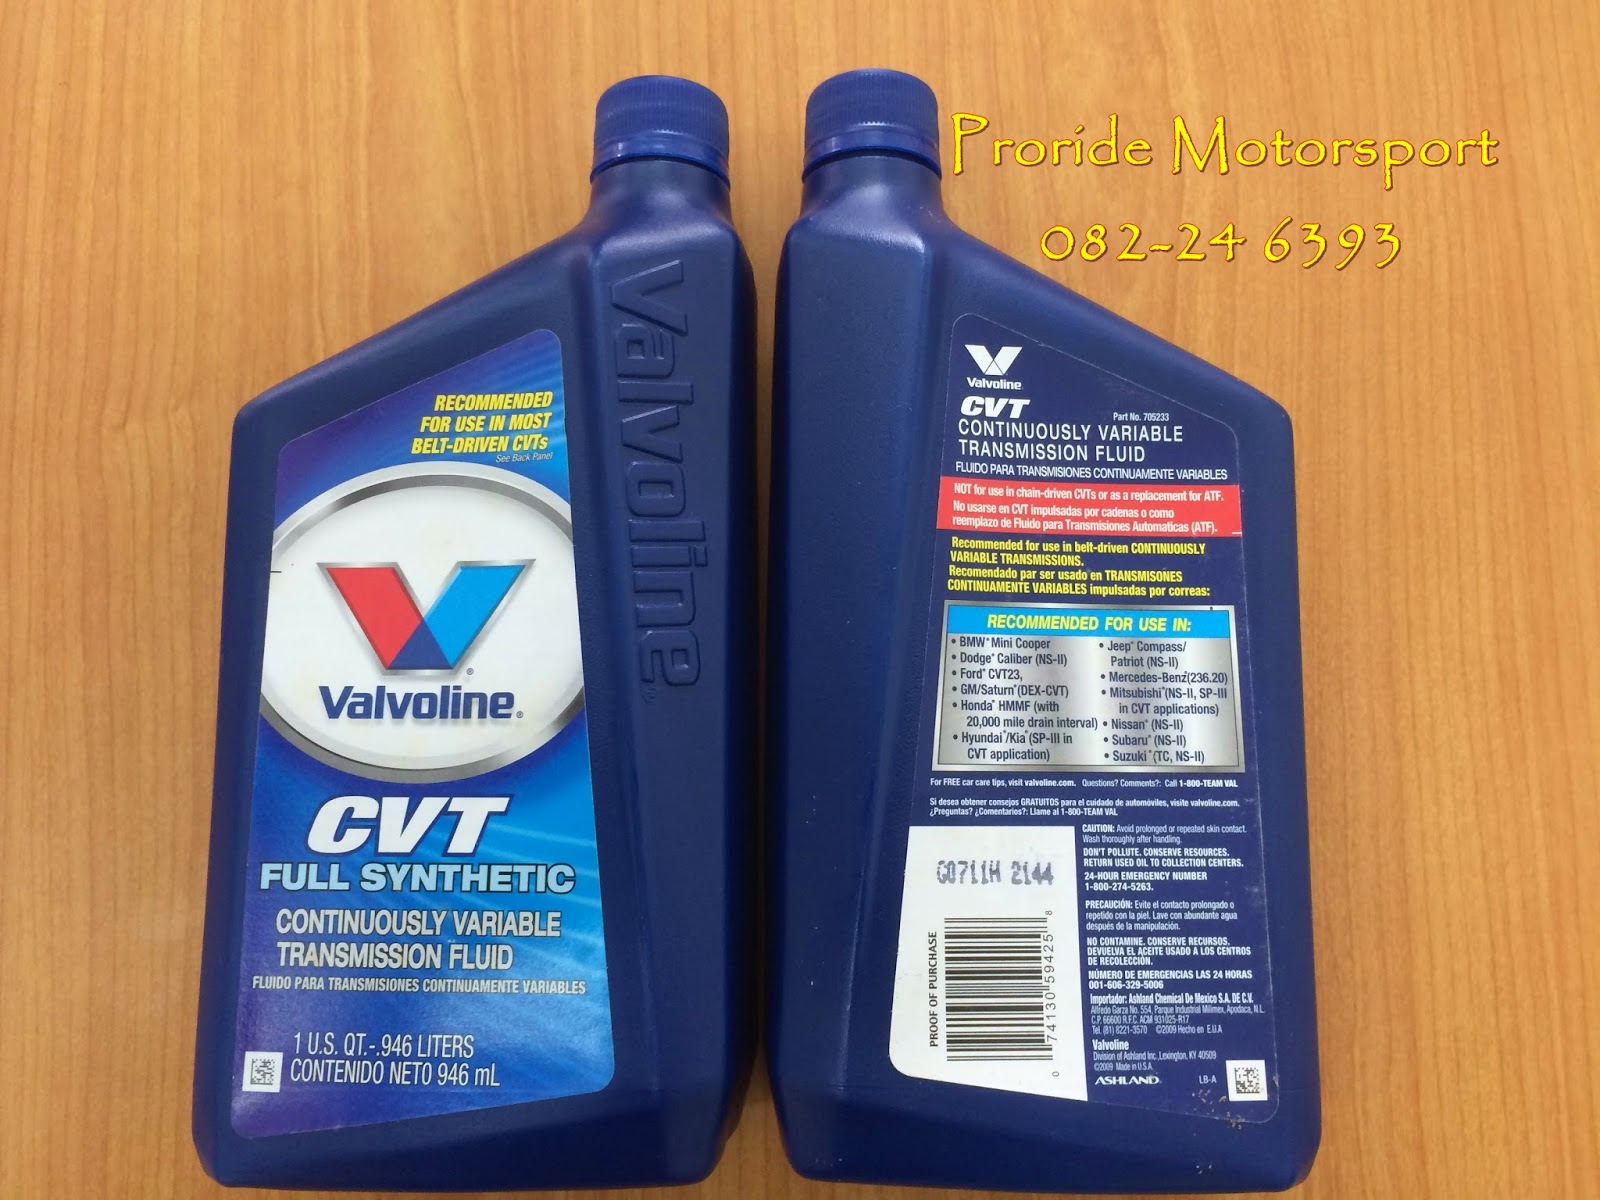 Valvoline - The world's First Motor Oil | Pro-ride Motorsports